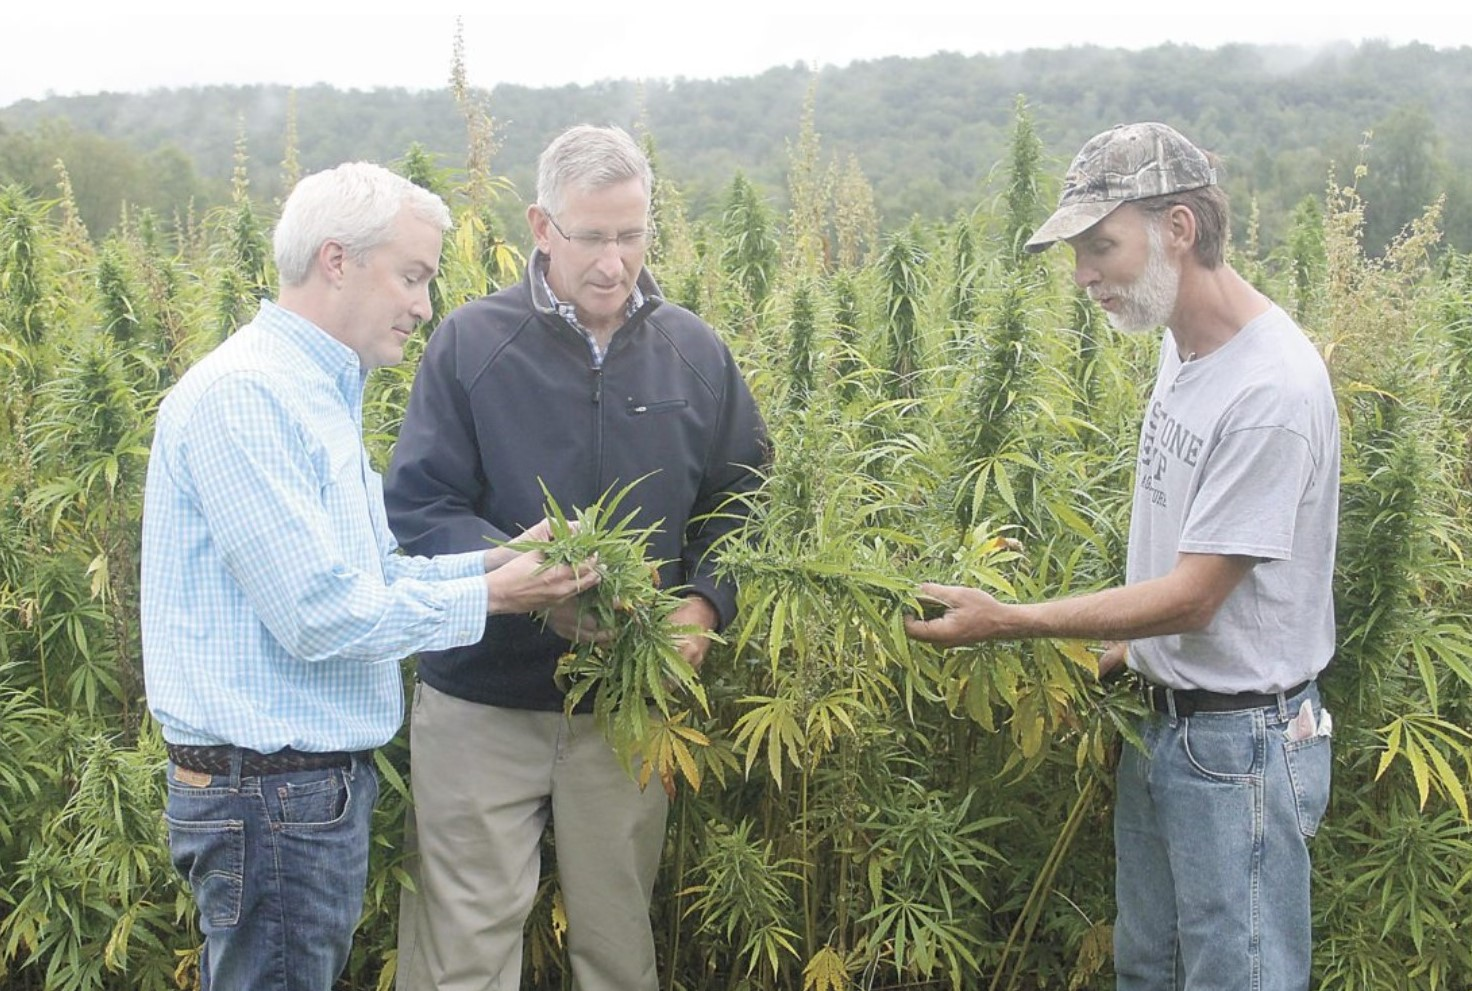 State's Ag Department Inundated with Applications to Grow Hemp; Our Neighbors Lead the Way